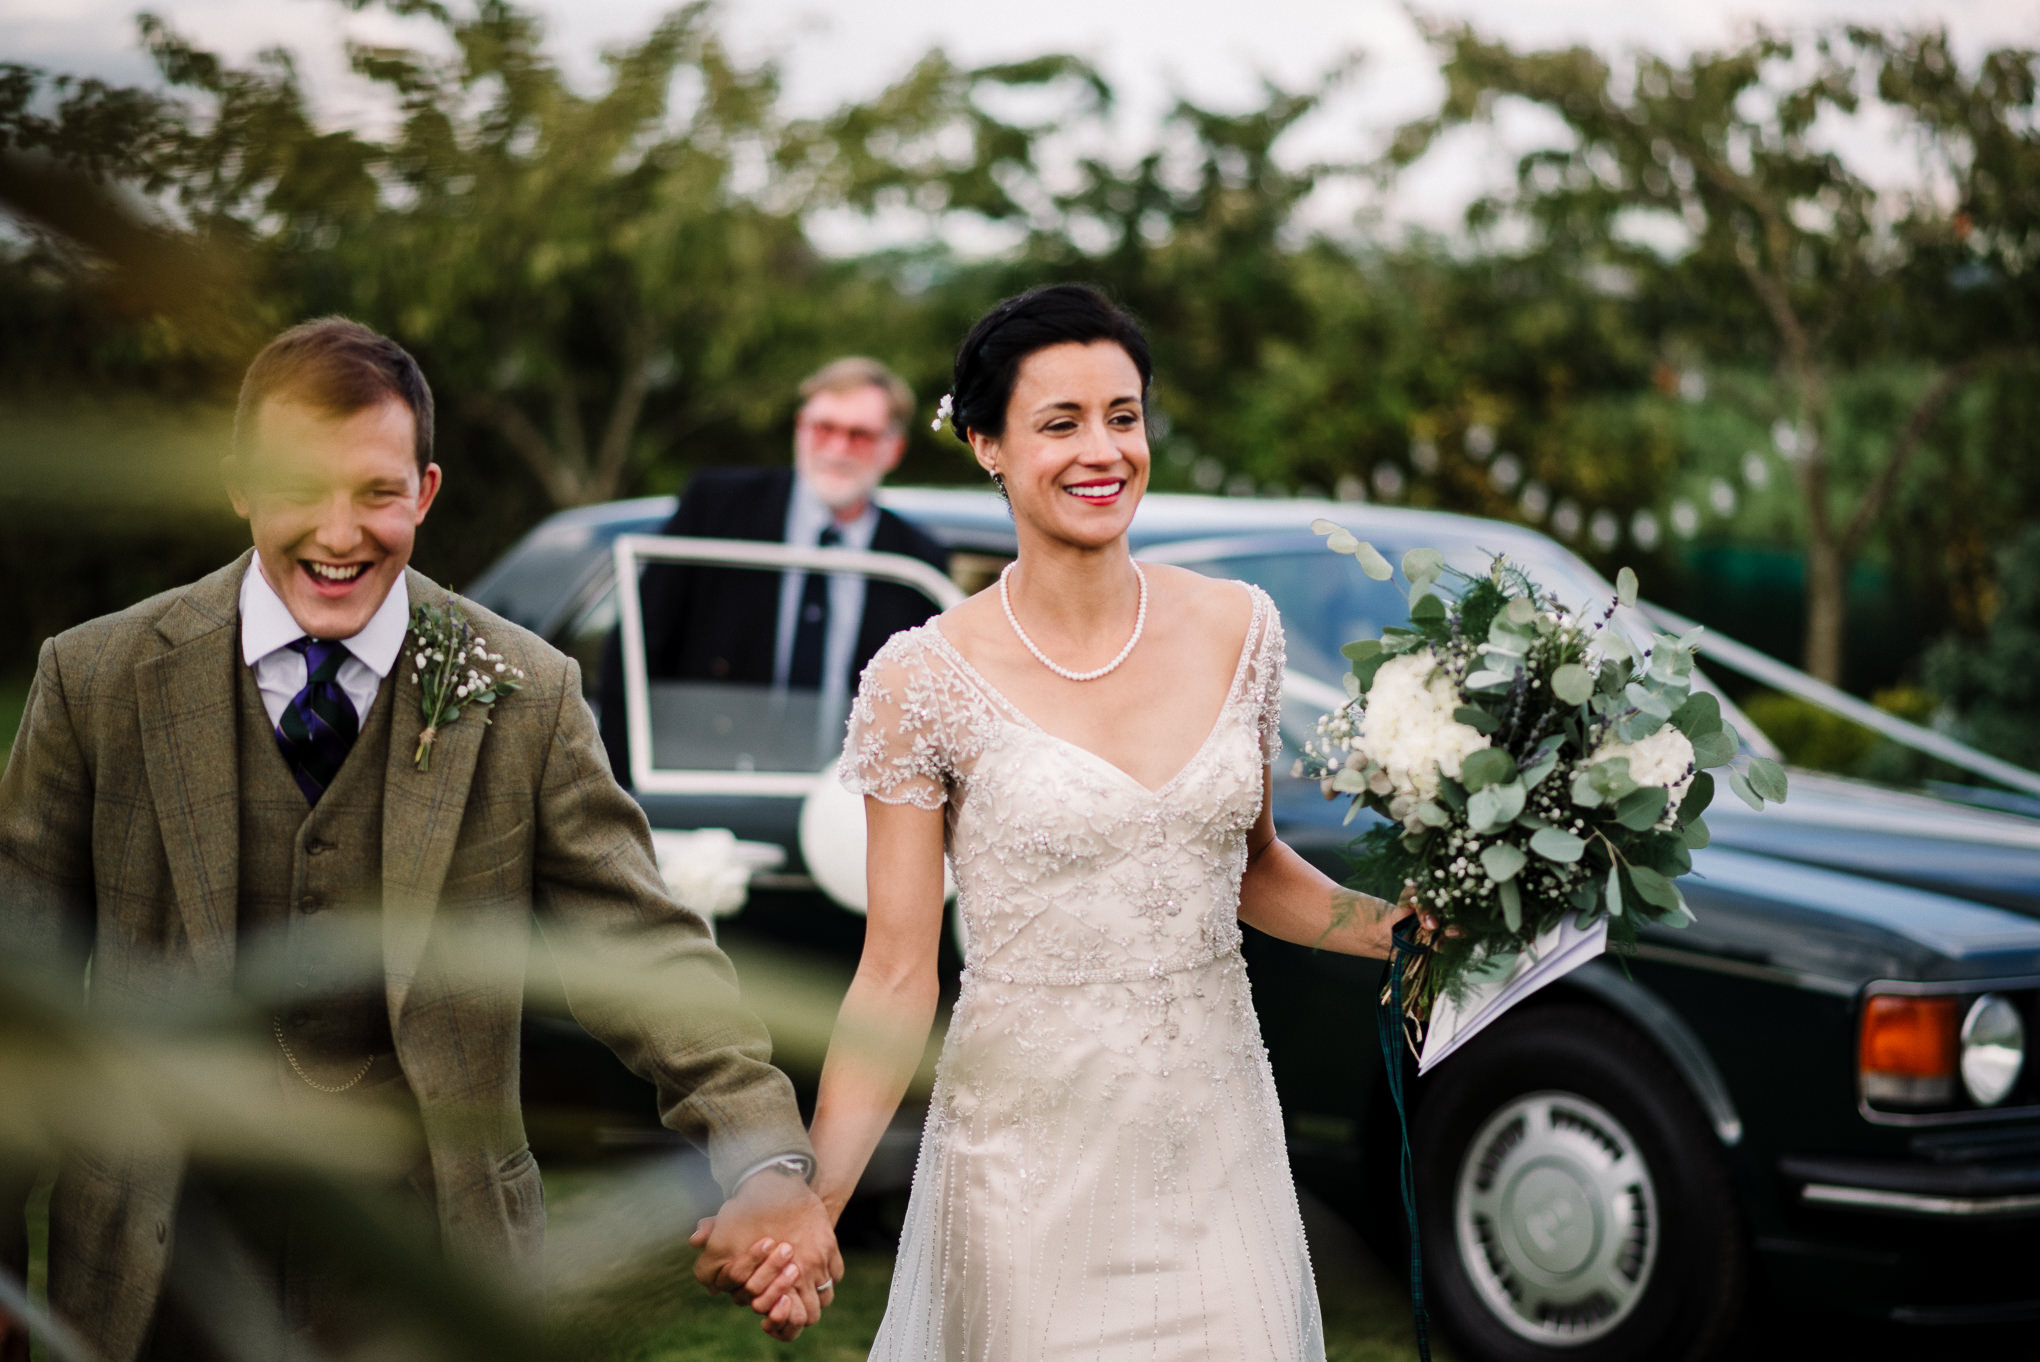 Natural shot of bride and groom walking together after arriving at the farm